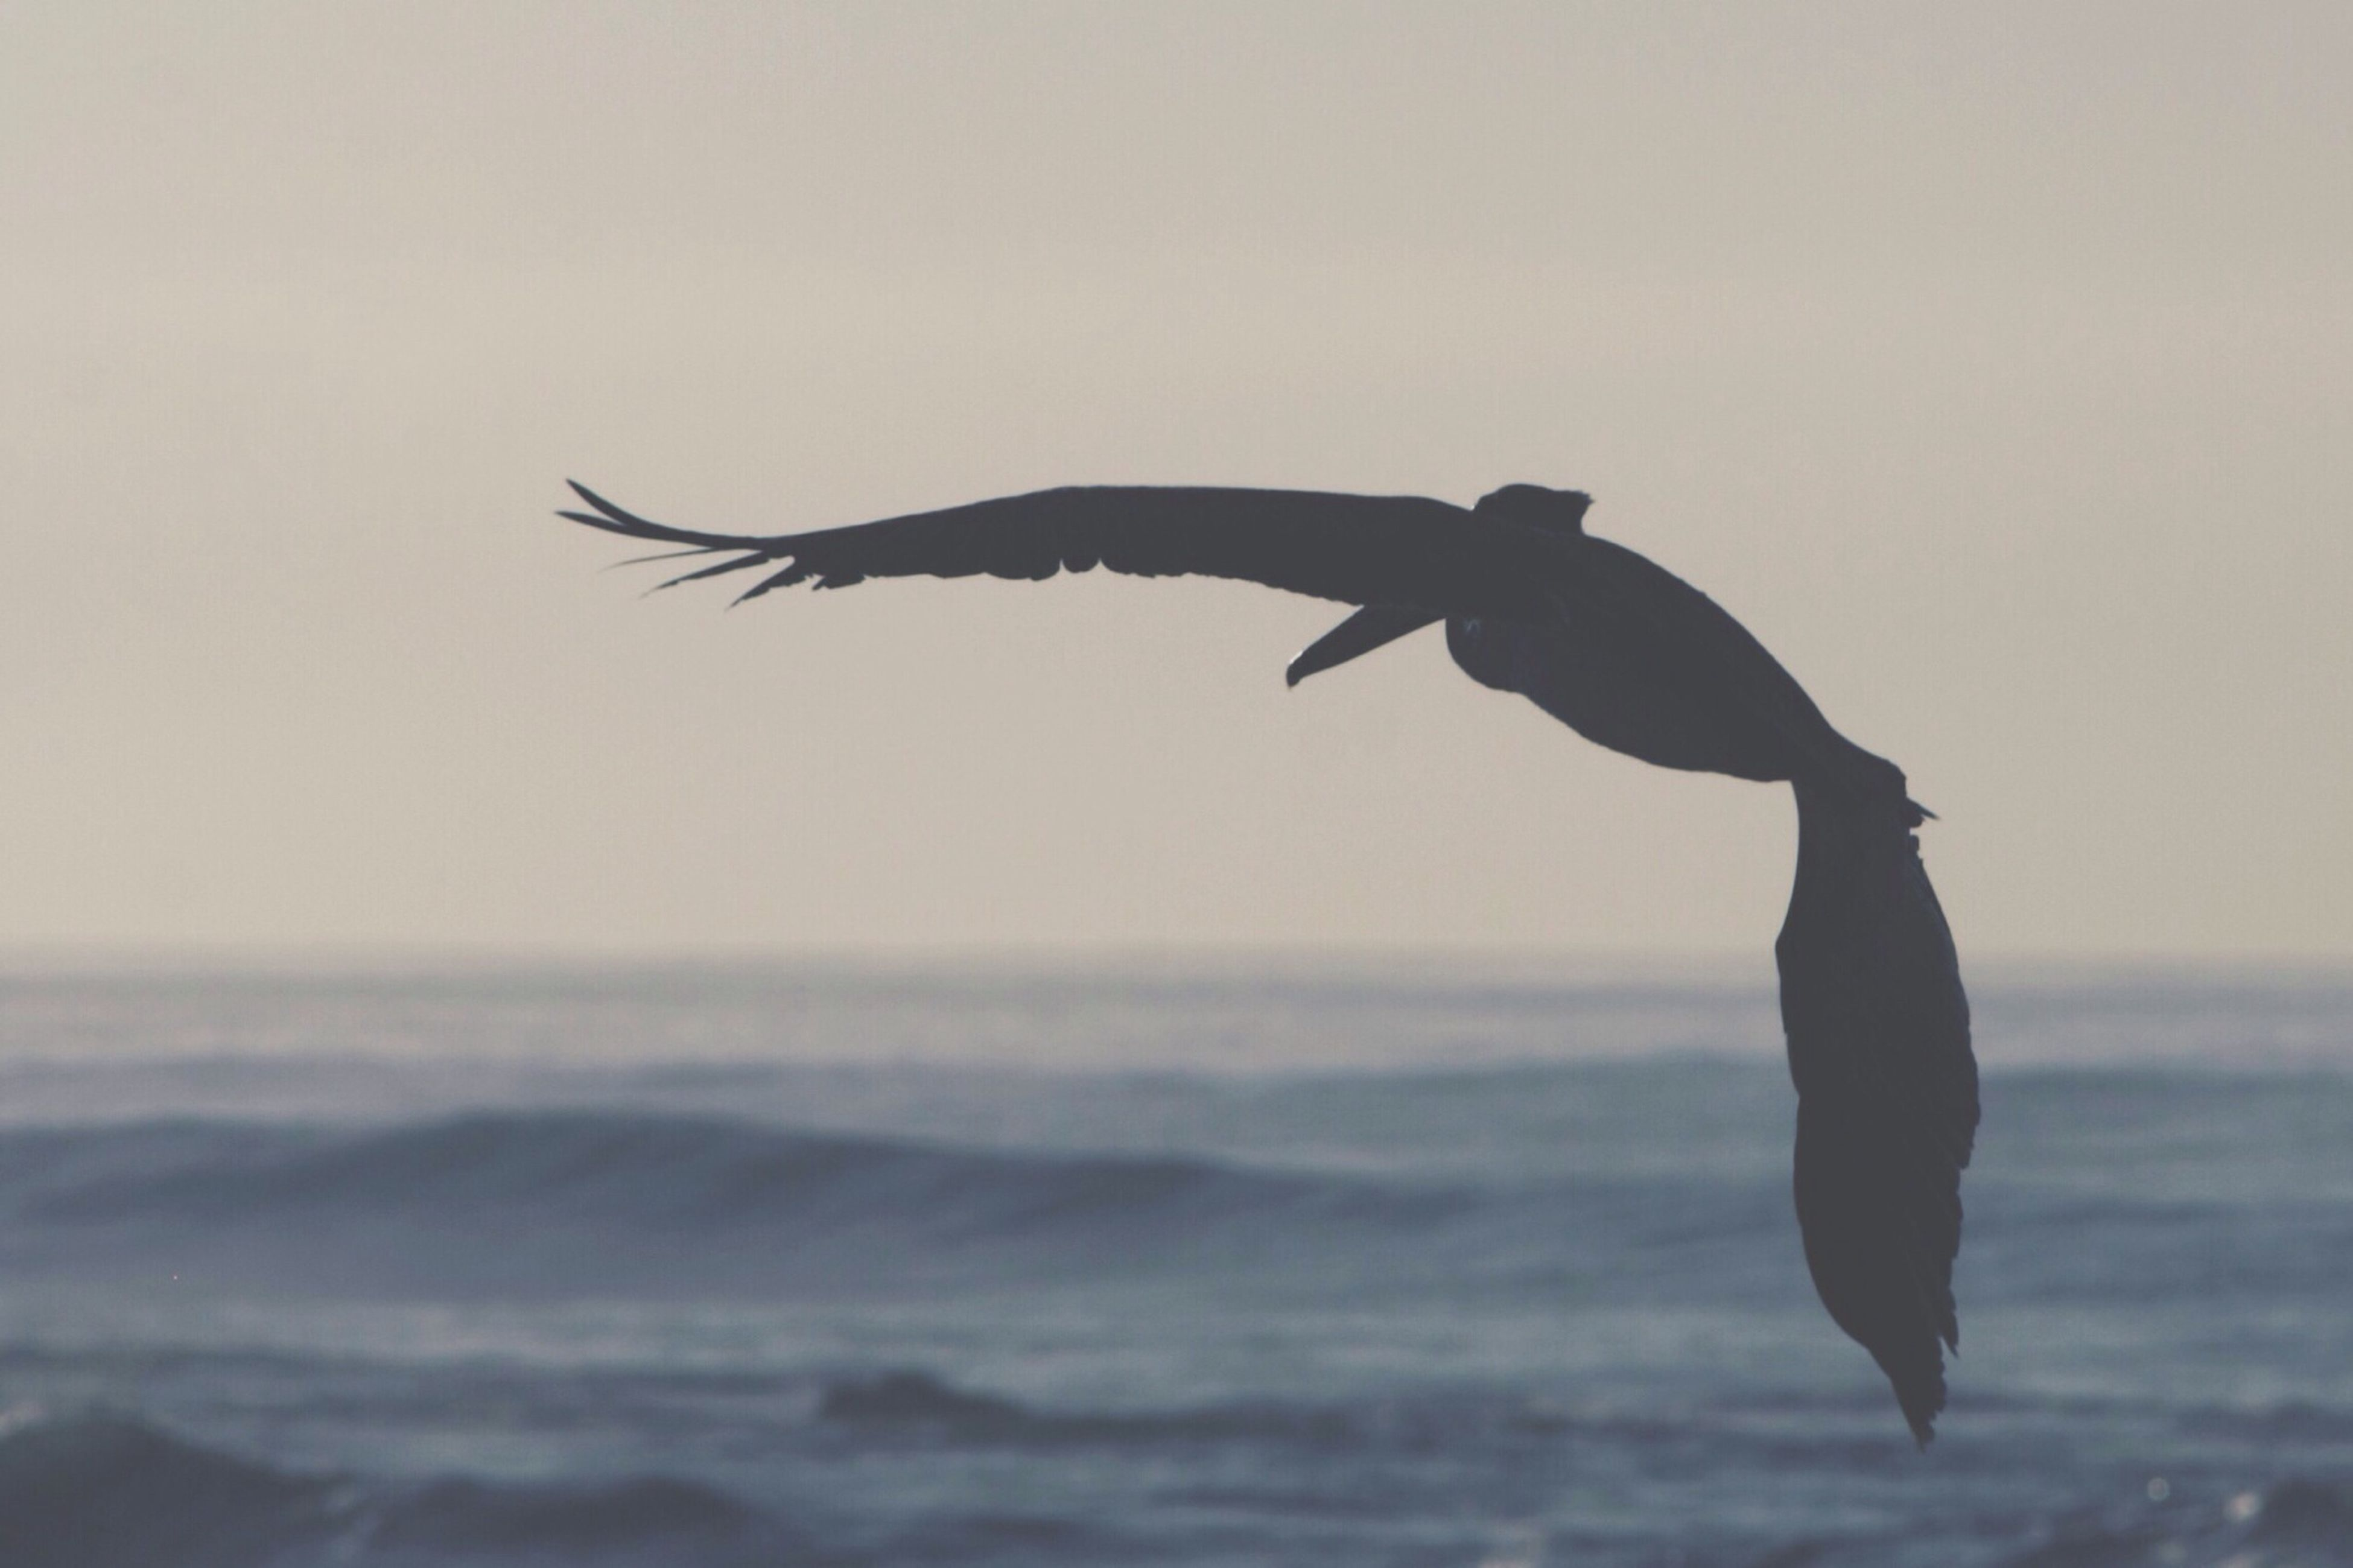 flying, animal themes, bird, one animal, spread wings, animals in the wild, wildlife, mid-air, sea, water, seagull, sky, nature, clear sky, full length, motion, copy space, silhouette, beauty in nature, horizon over water